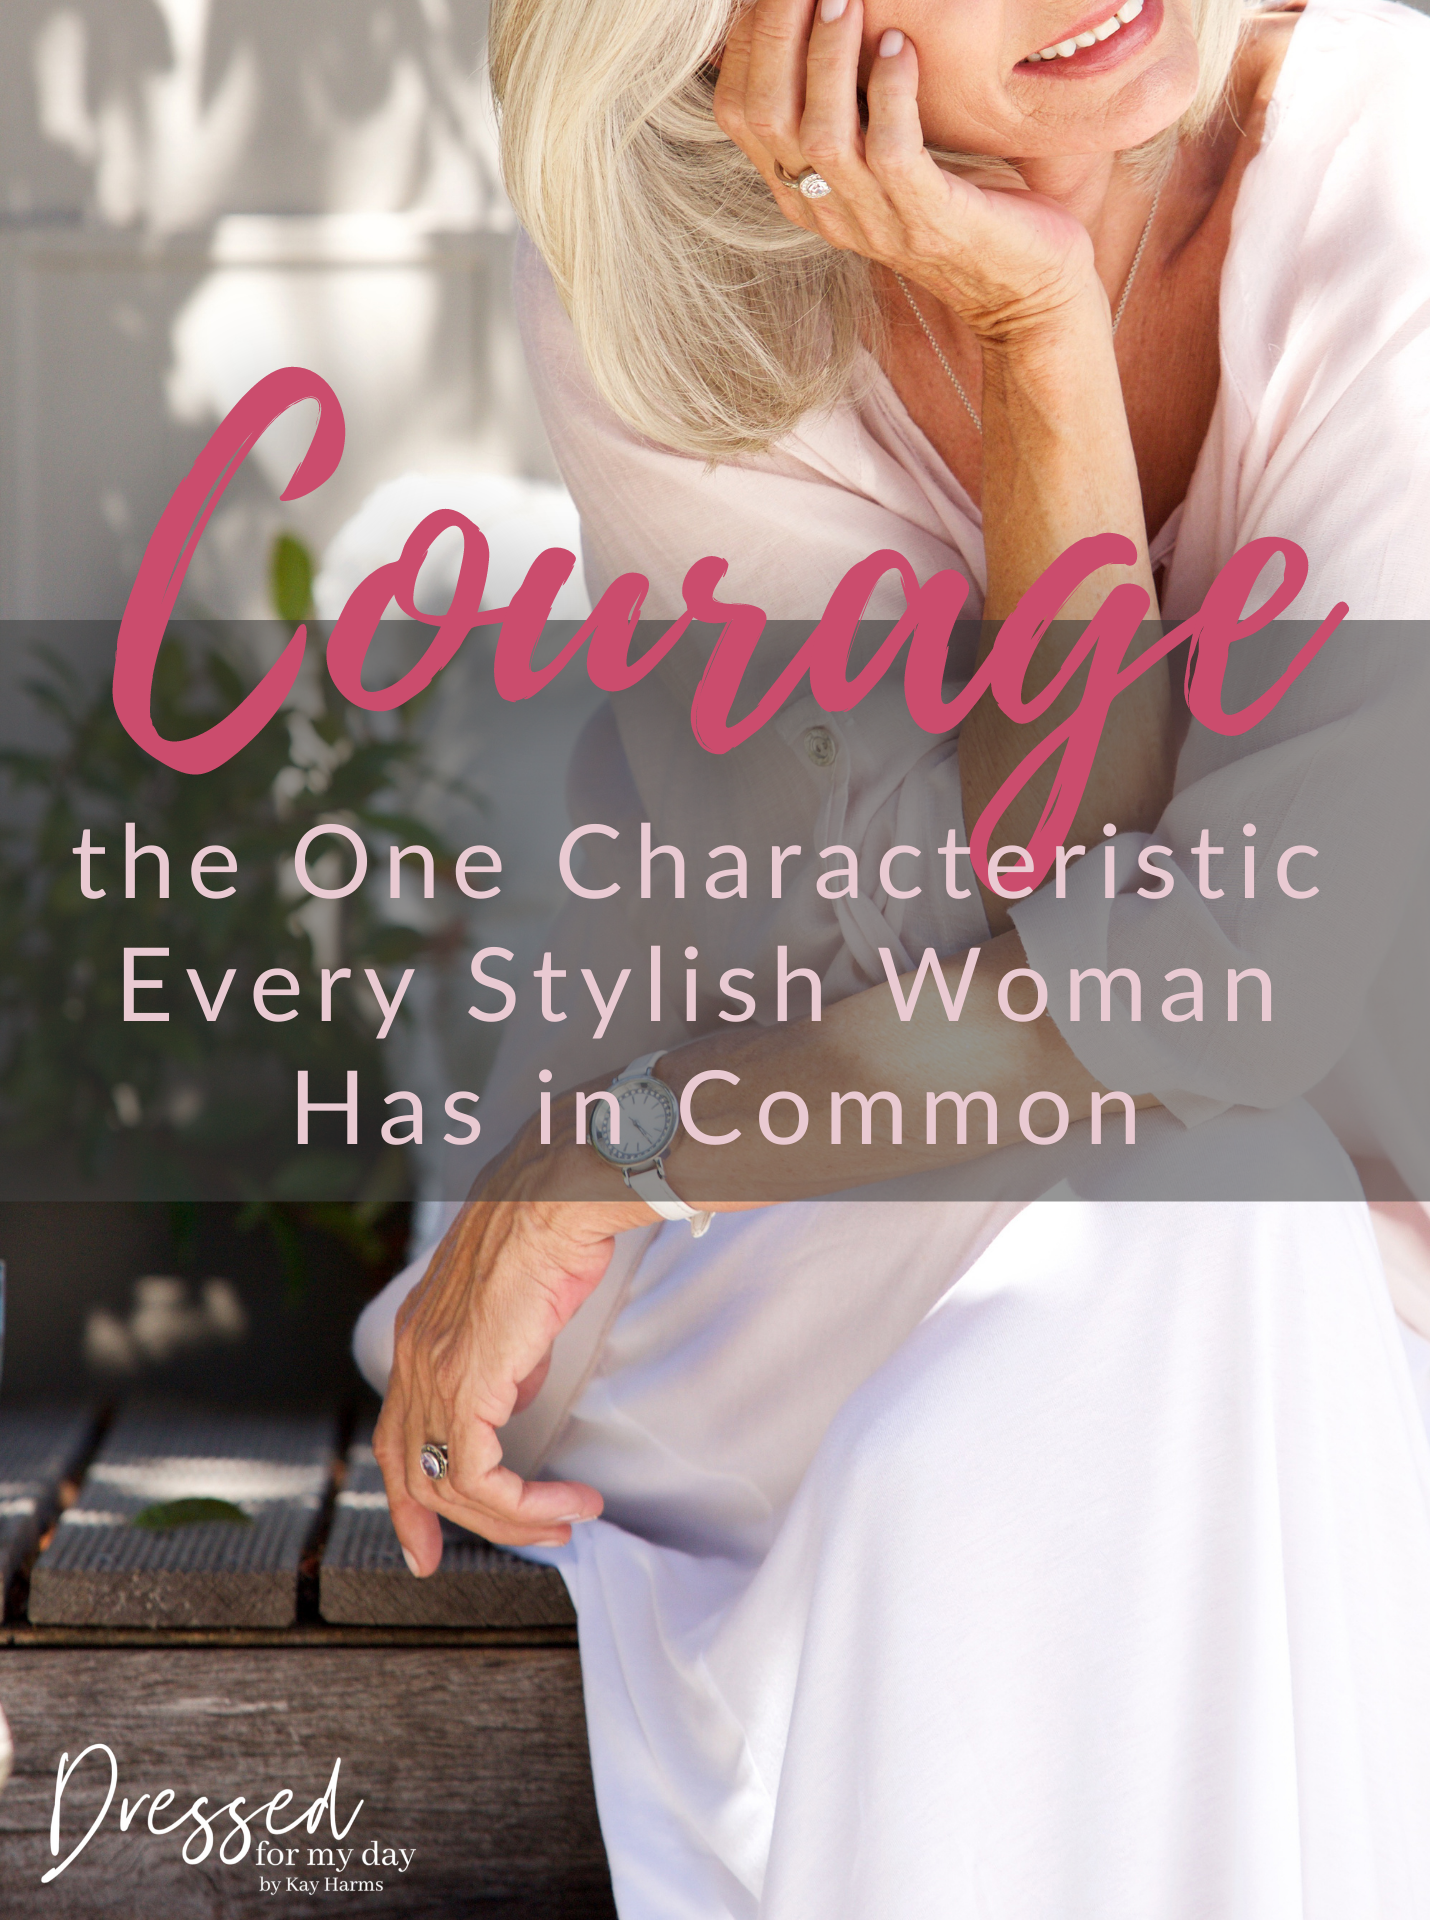 Courage the One Characteristic Every Stylish Woman Has in Common